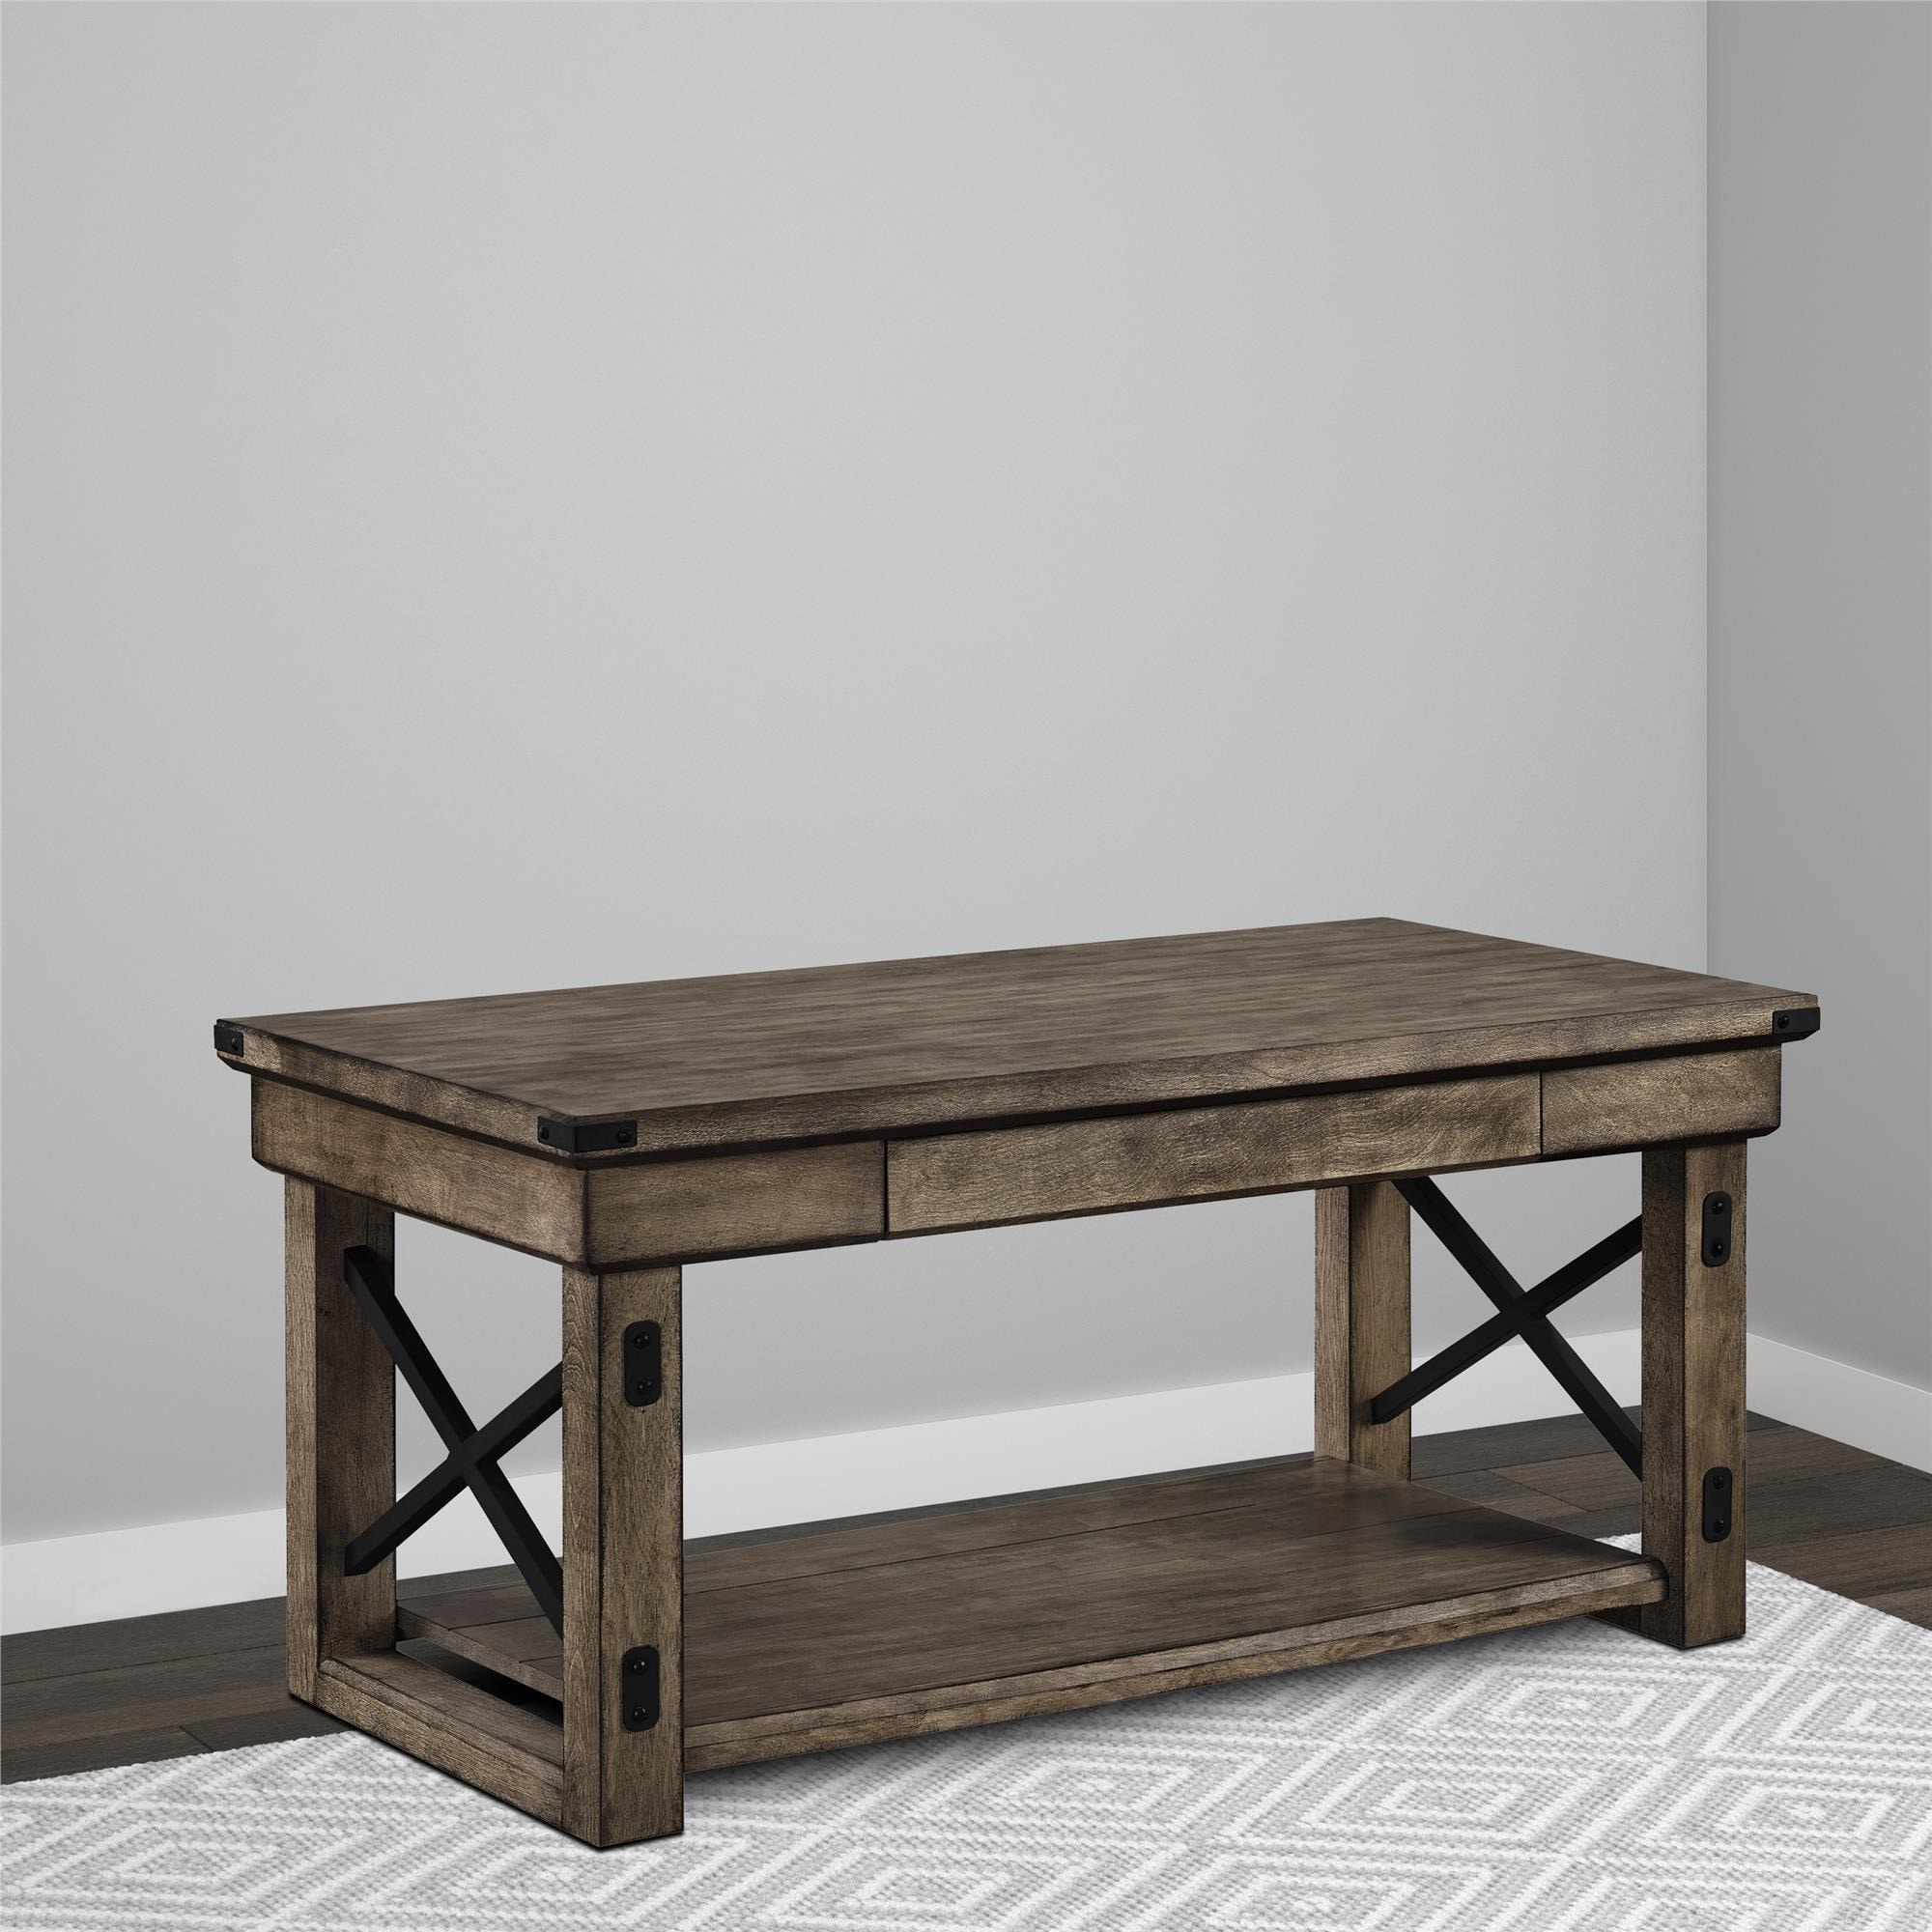 Ordinaire Avenue Greene Woodgate Rustic Grey Wood Veneer Coffee Table